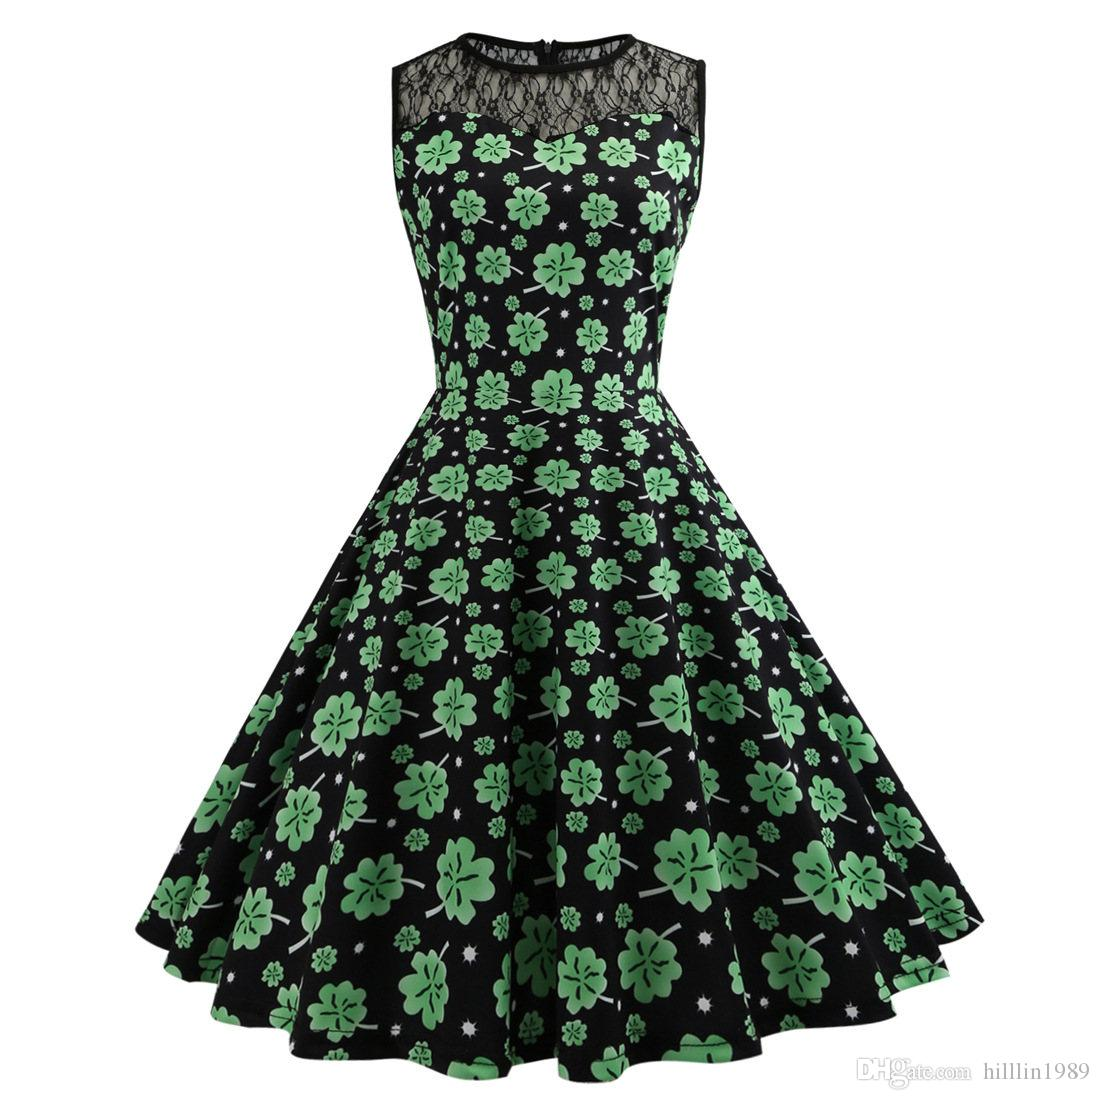 Shamrocks Printed Retro Party Dresses St. Patrick's Day Casual Dress Lace Panelled Clothing Fashion Ireland Holiday Fashion Wear